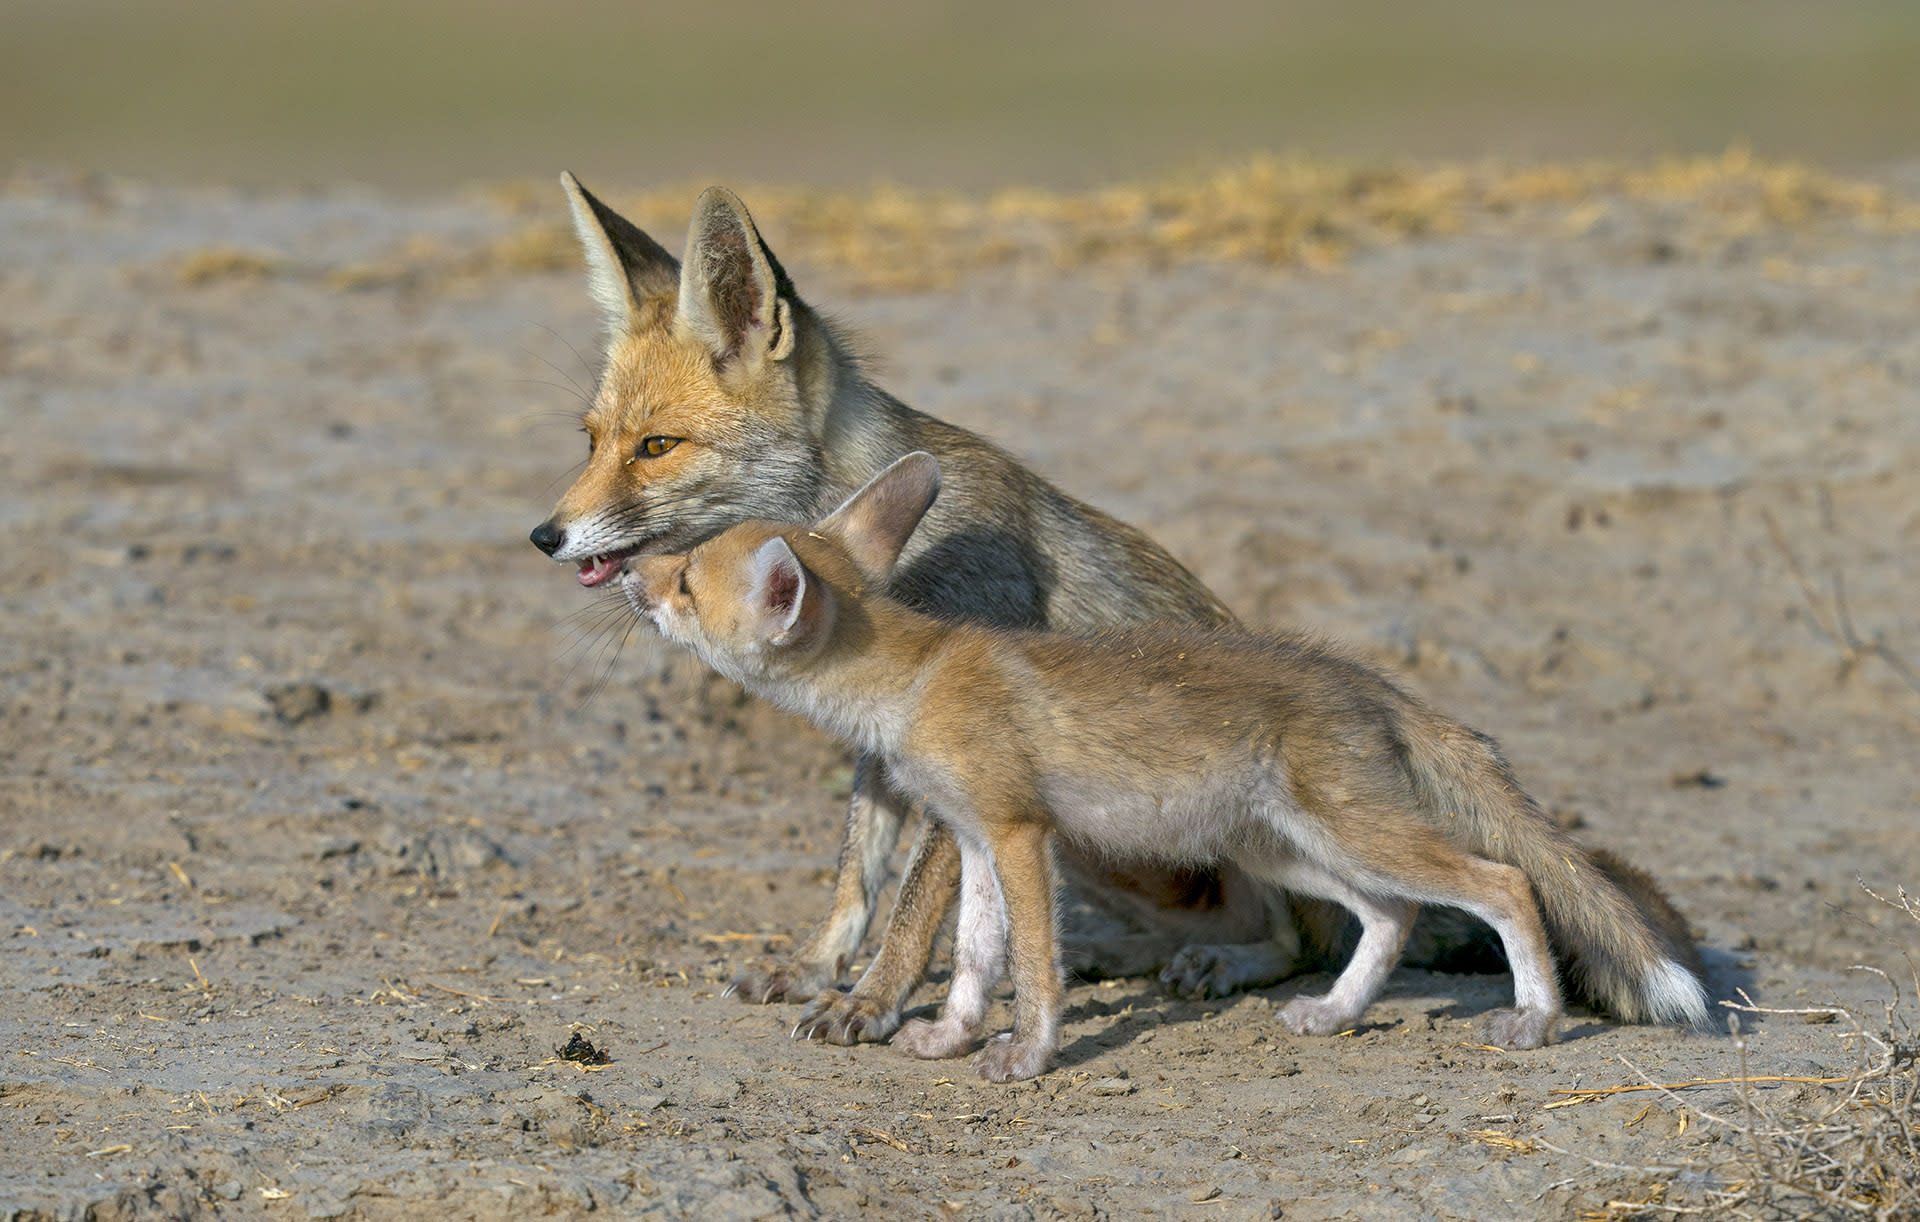 "The desert fox (Vulpes vulpes pusilla) is one of two species of fox found in the Little Rann of Kutch. The other is the Indian fox, a.k.a. Vulpes bengalensis. As its name suggests, the desert fox, is found in arid conditions and deals with the extreme nature of its habitat by modifying its behaviour. ""They are most active at dawn and dusk but in winter, it can be seen hunting during mid-day,"" says Dr Rahmani. ""They are opportunistic foragers so during monsoon, when it's drizzling, they come out in search of insects, rodents and lizards, which also become active. During extremely hot days, they stay in their burrows, and on extreme cold nights, they huddle, curled up in the burrow or under a bush."""